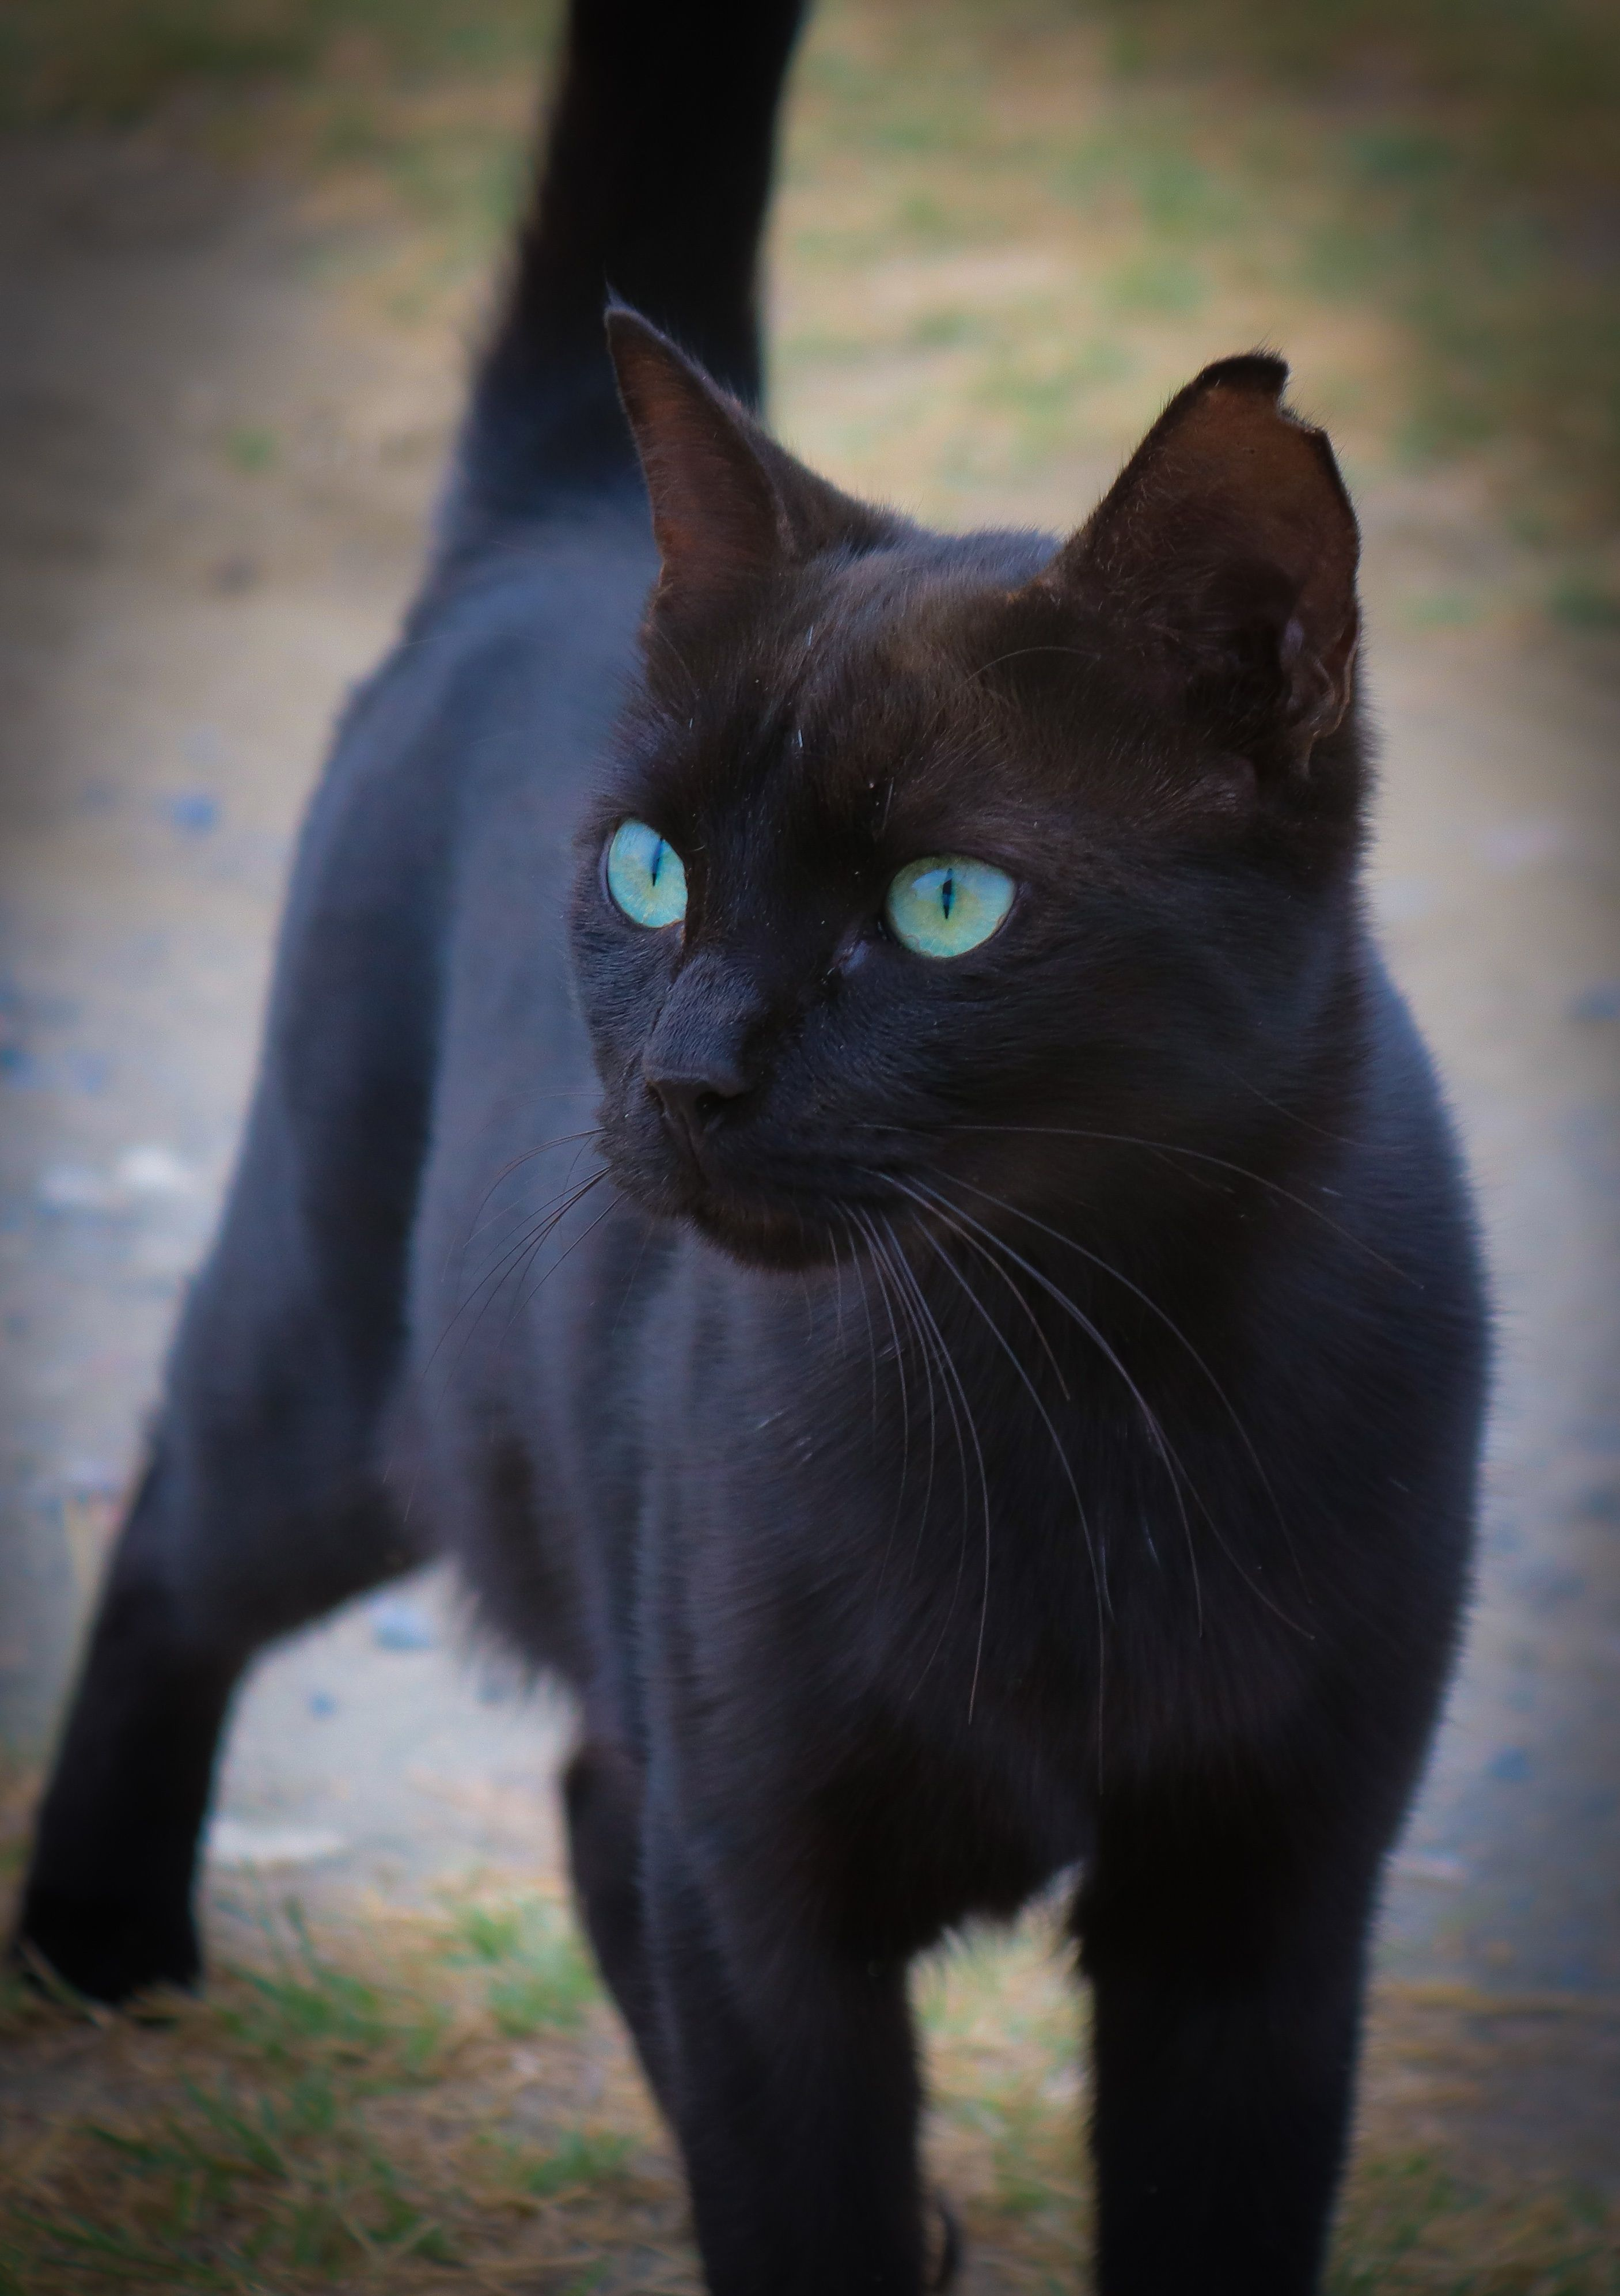 looking like a little Panther Cat with blue eyes, Baby